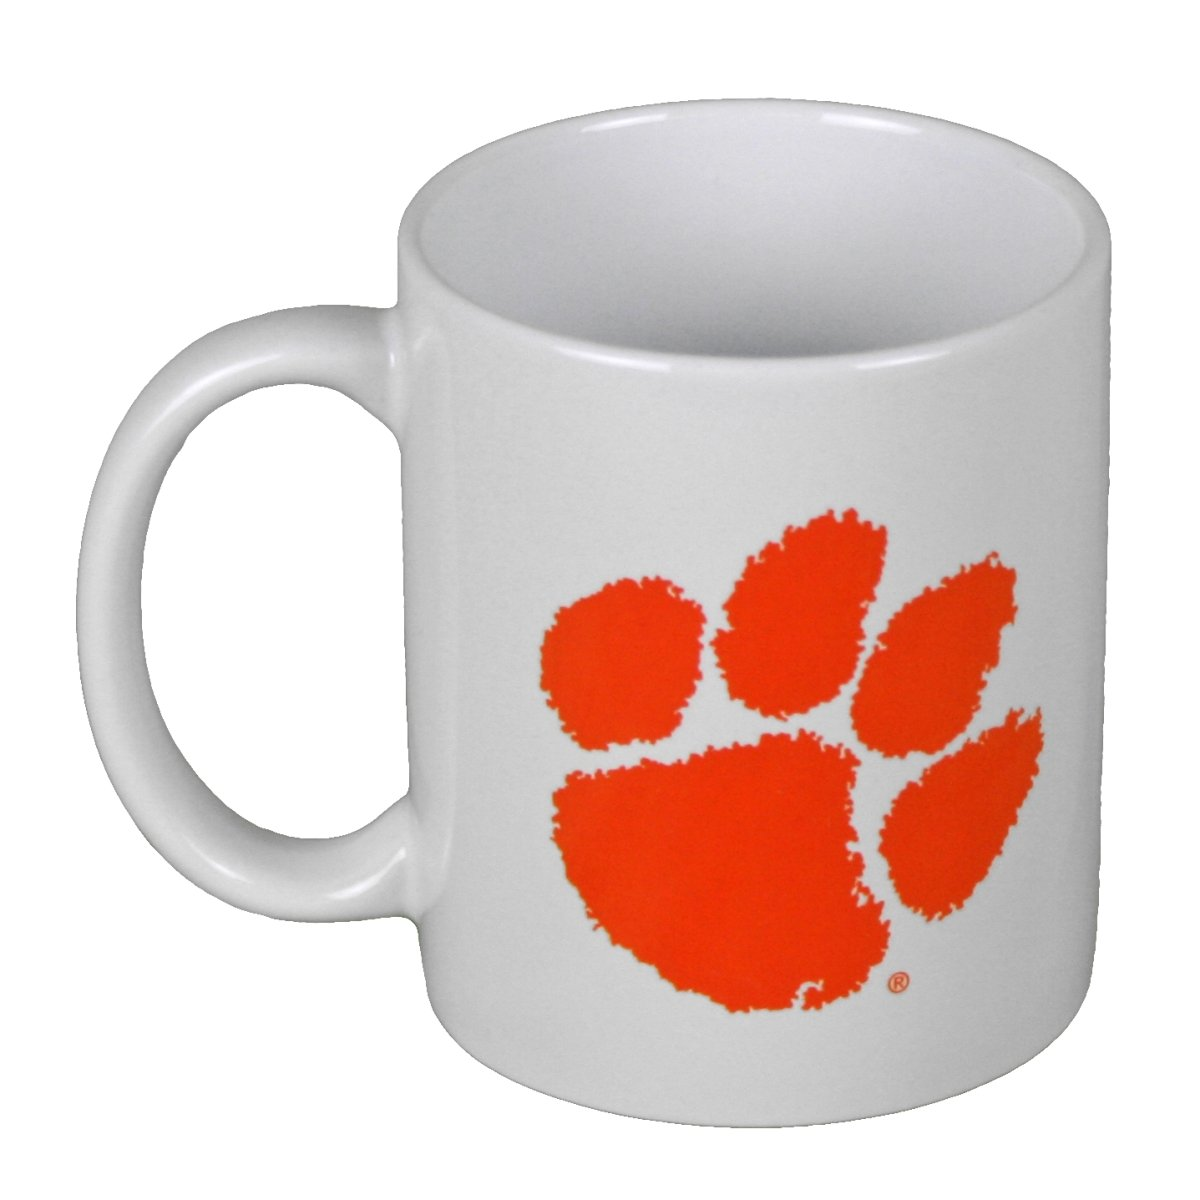 11 Oz Mug White With Orange Paw - Mr. Knickerbocker